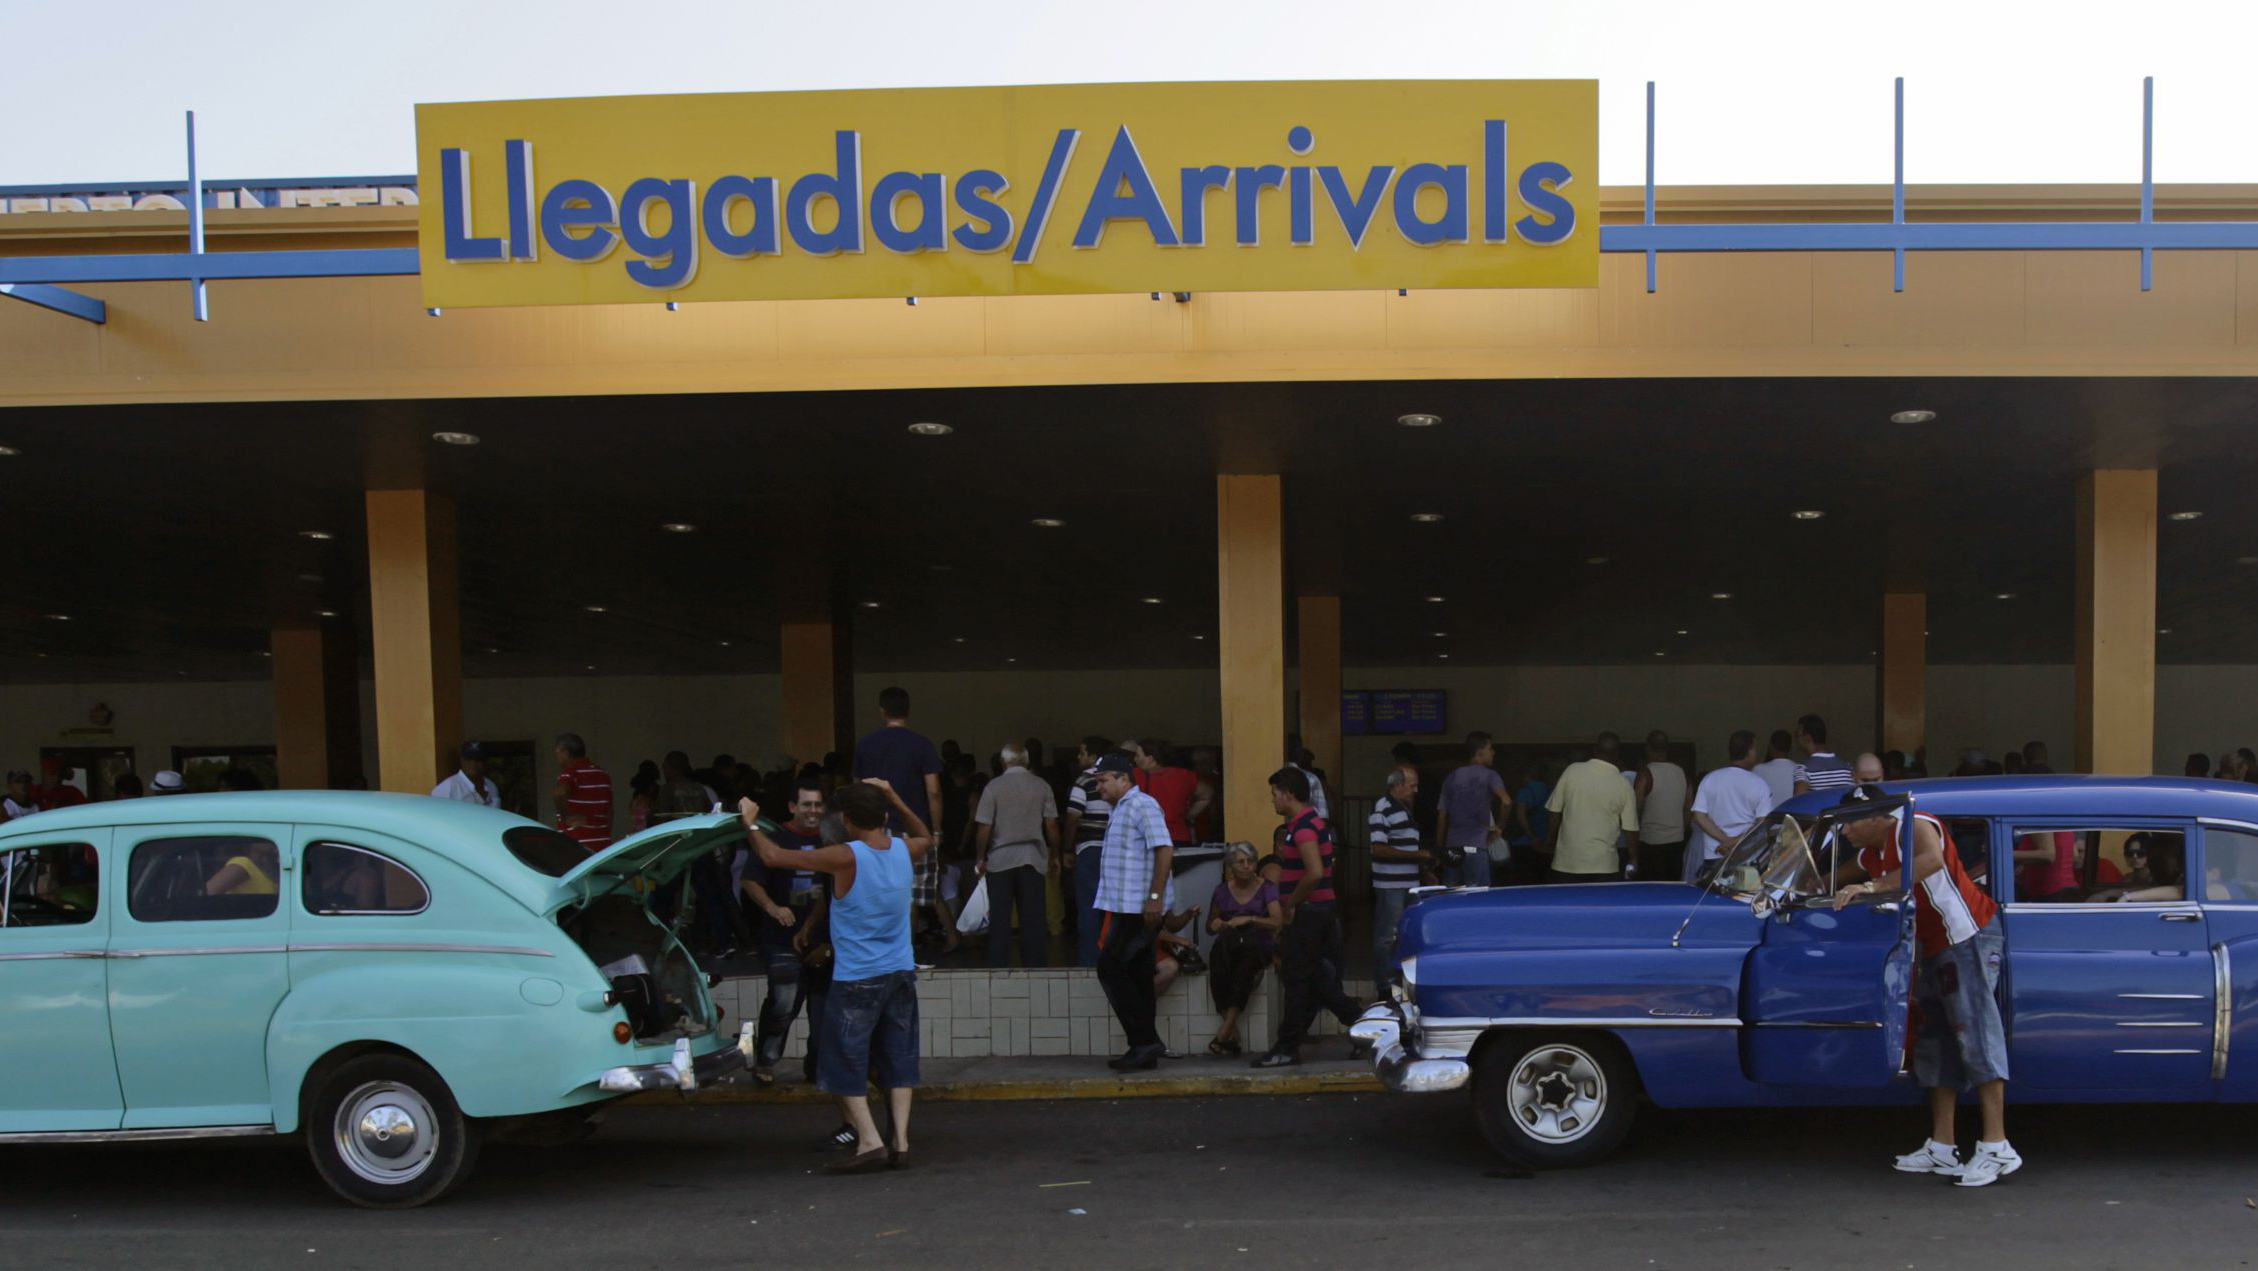 Private-licenced taxis wait outside the Miami arrivals terminal at Havana's Jose Marti airport July 19, 2012. A sharp increase in customs duties due to kick in next month has angered many Cubans and cast a shadow over market-oriented reforms on the communist-ruled island advocated by President Raul Castro. REUTERS/Desmond Boylan (CUBA - Tags: TRANSPORT SOCIETY POLITICS BUSINESS)